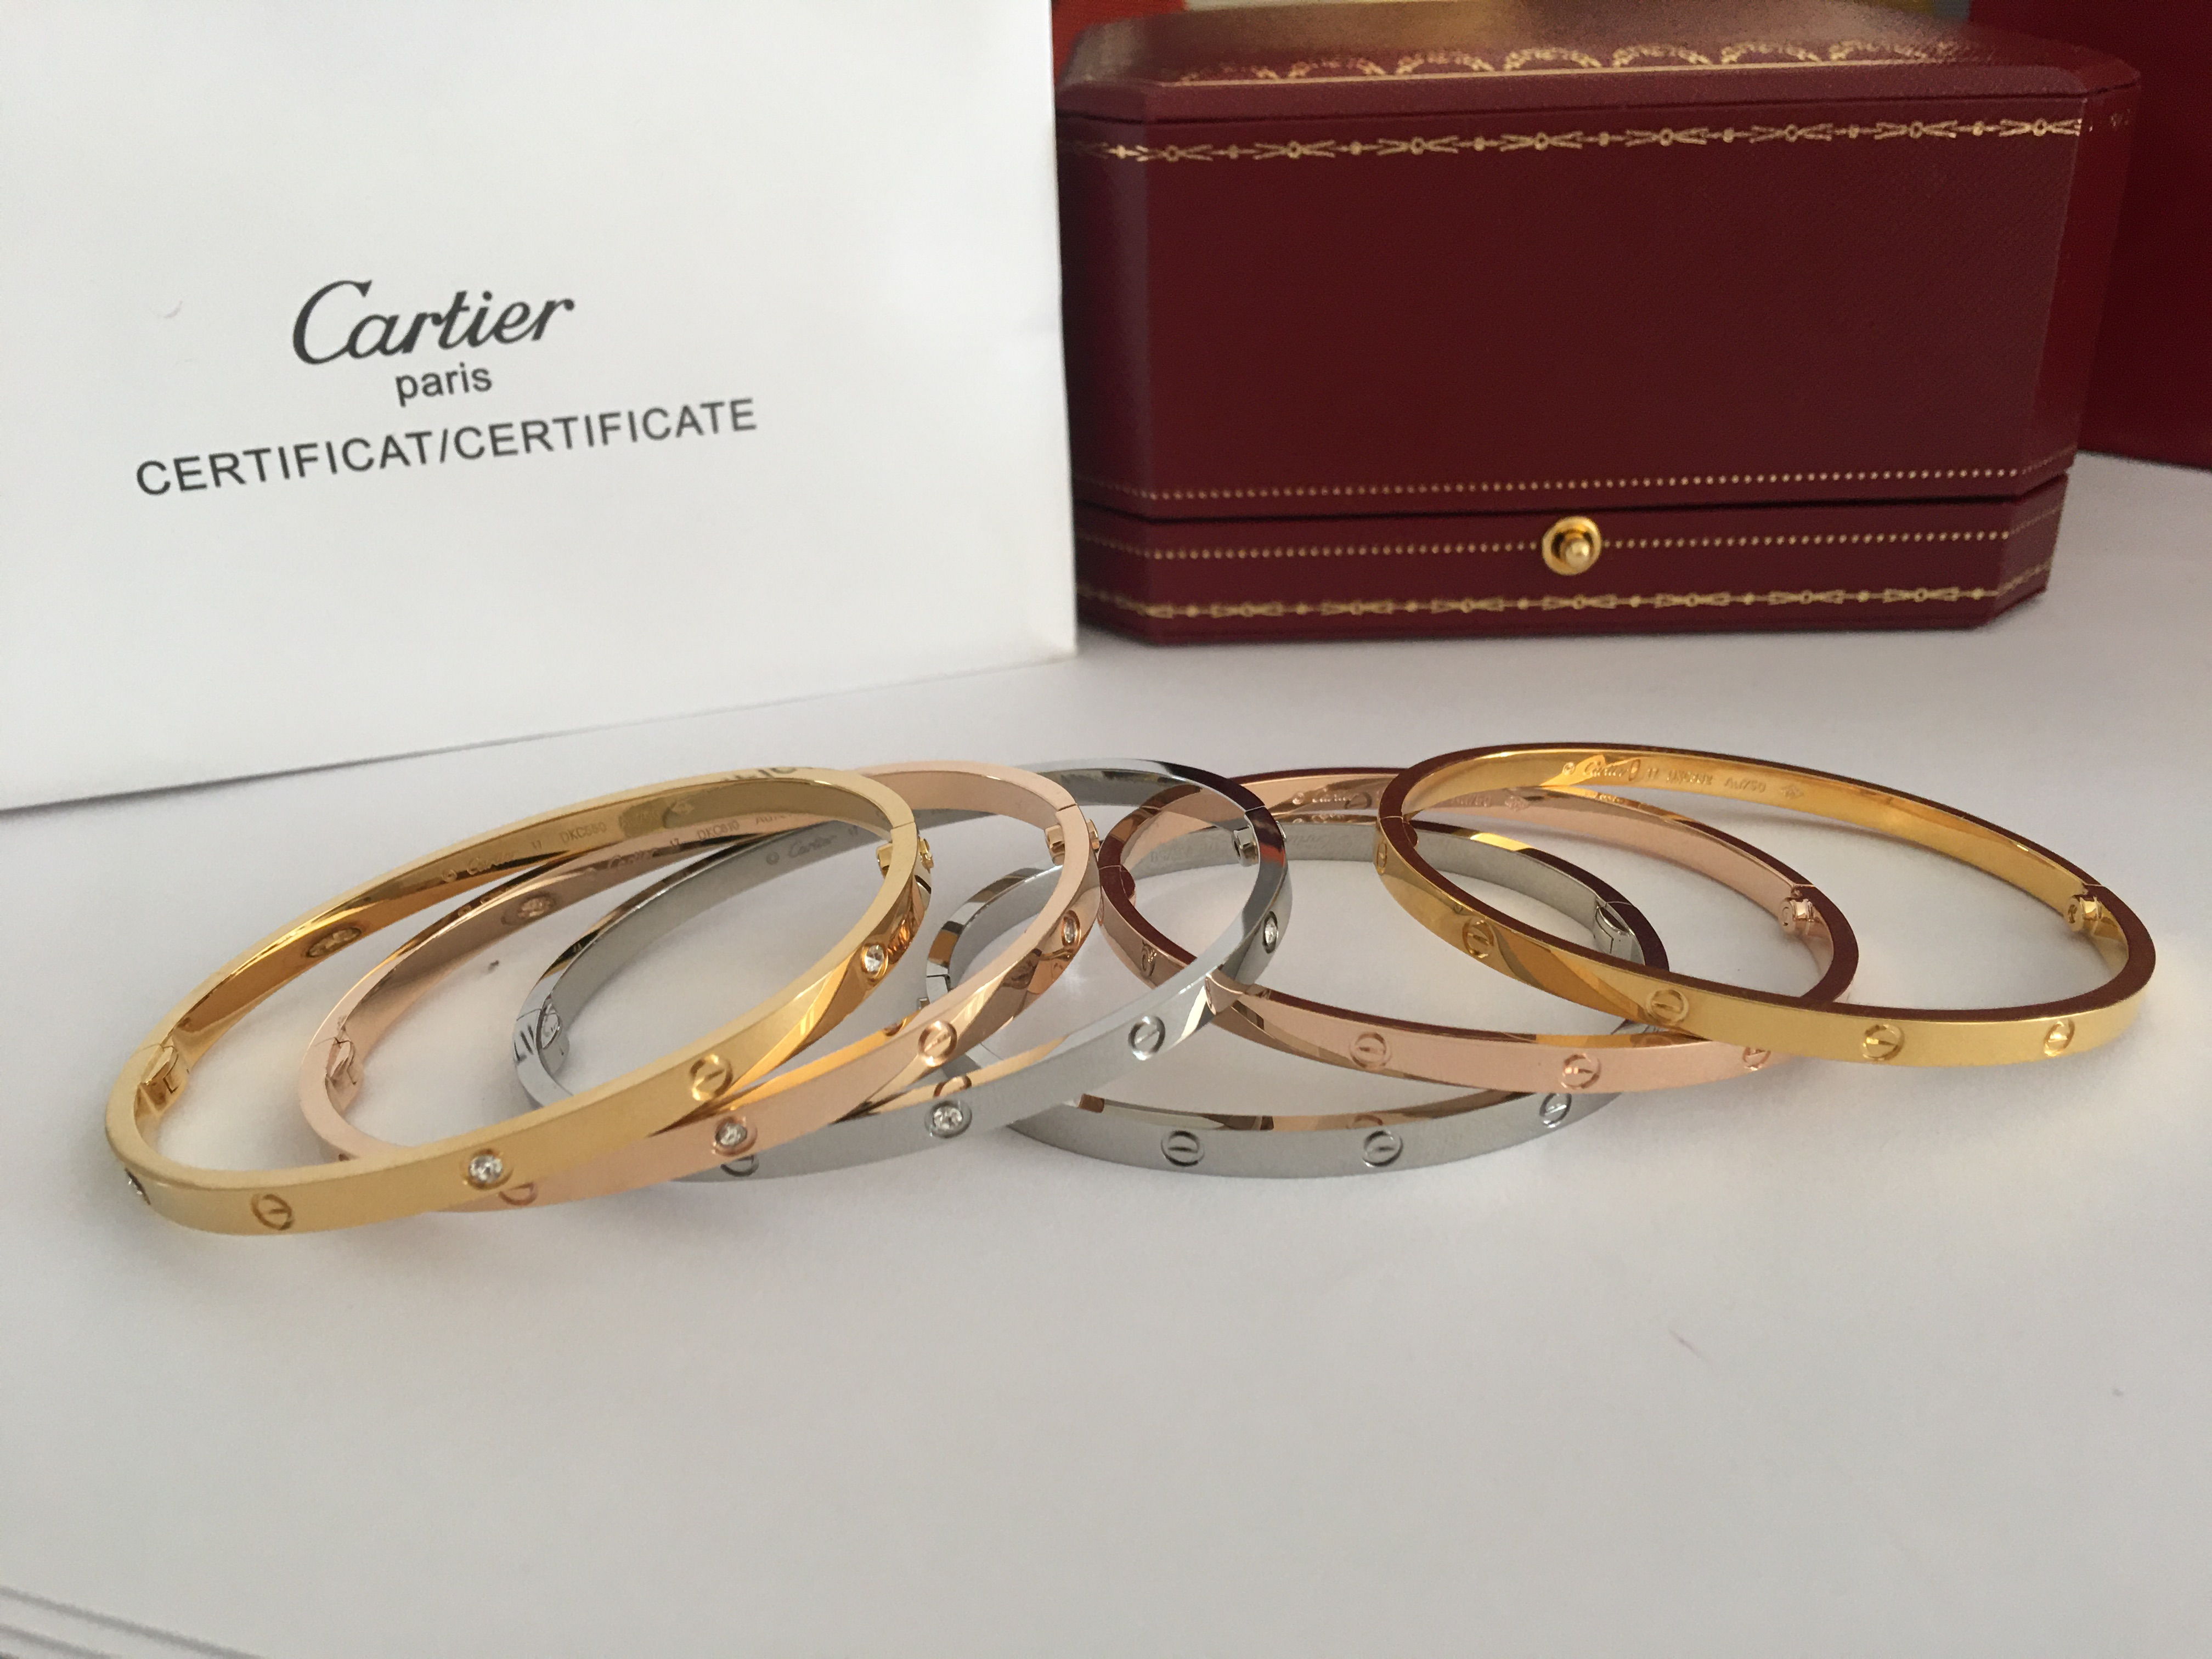 Diamond Cartier thin Love Bracelet Small size 16-19cm in yellow gold, white gold, pink gold